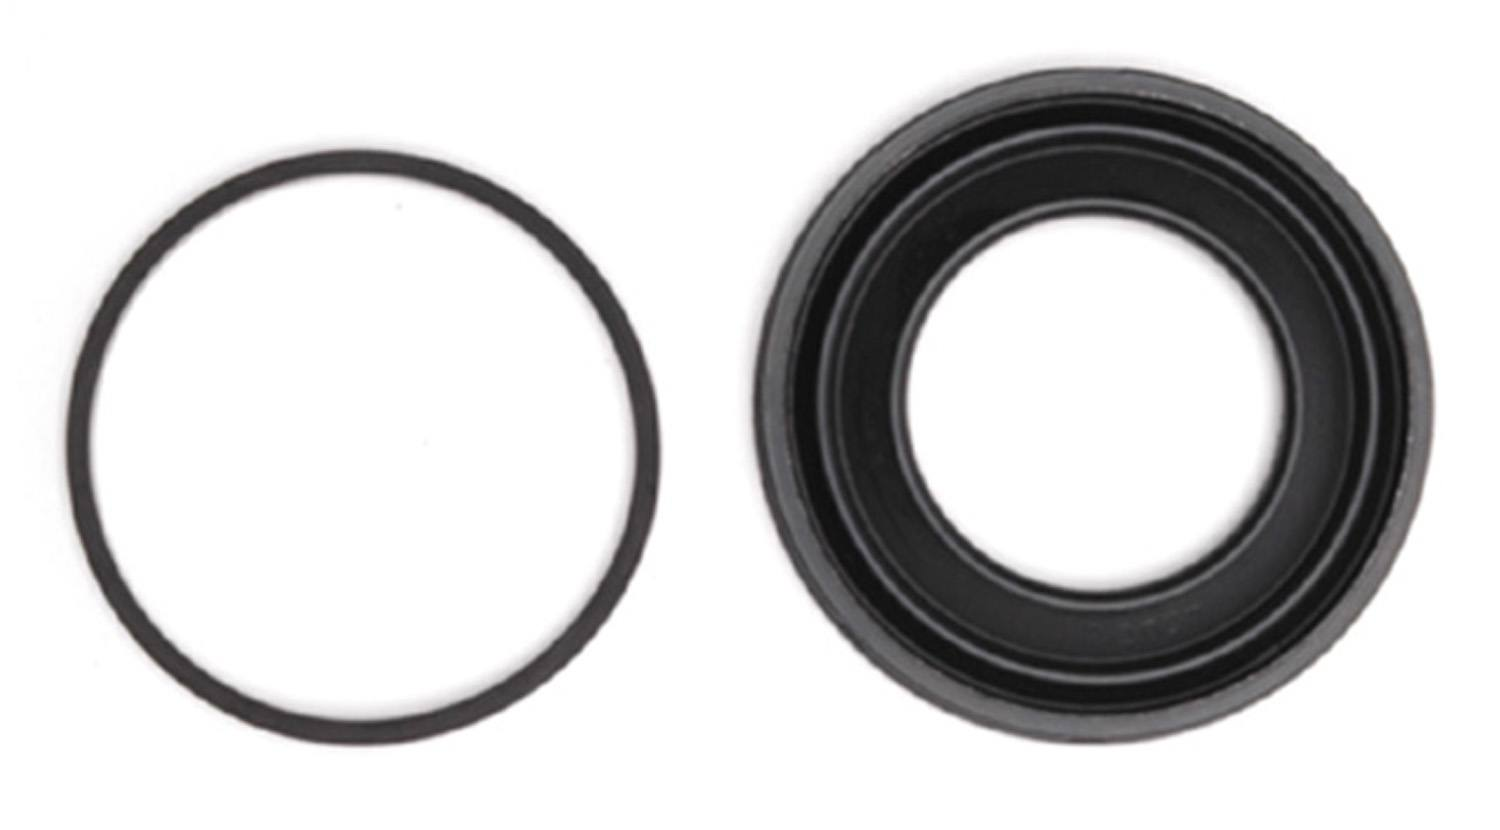 ACDELCO GOLD/PROFESSIONAL BRAKES - Disc Brake Caliper Seal Kit (Front) - ADU 18H21